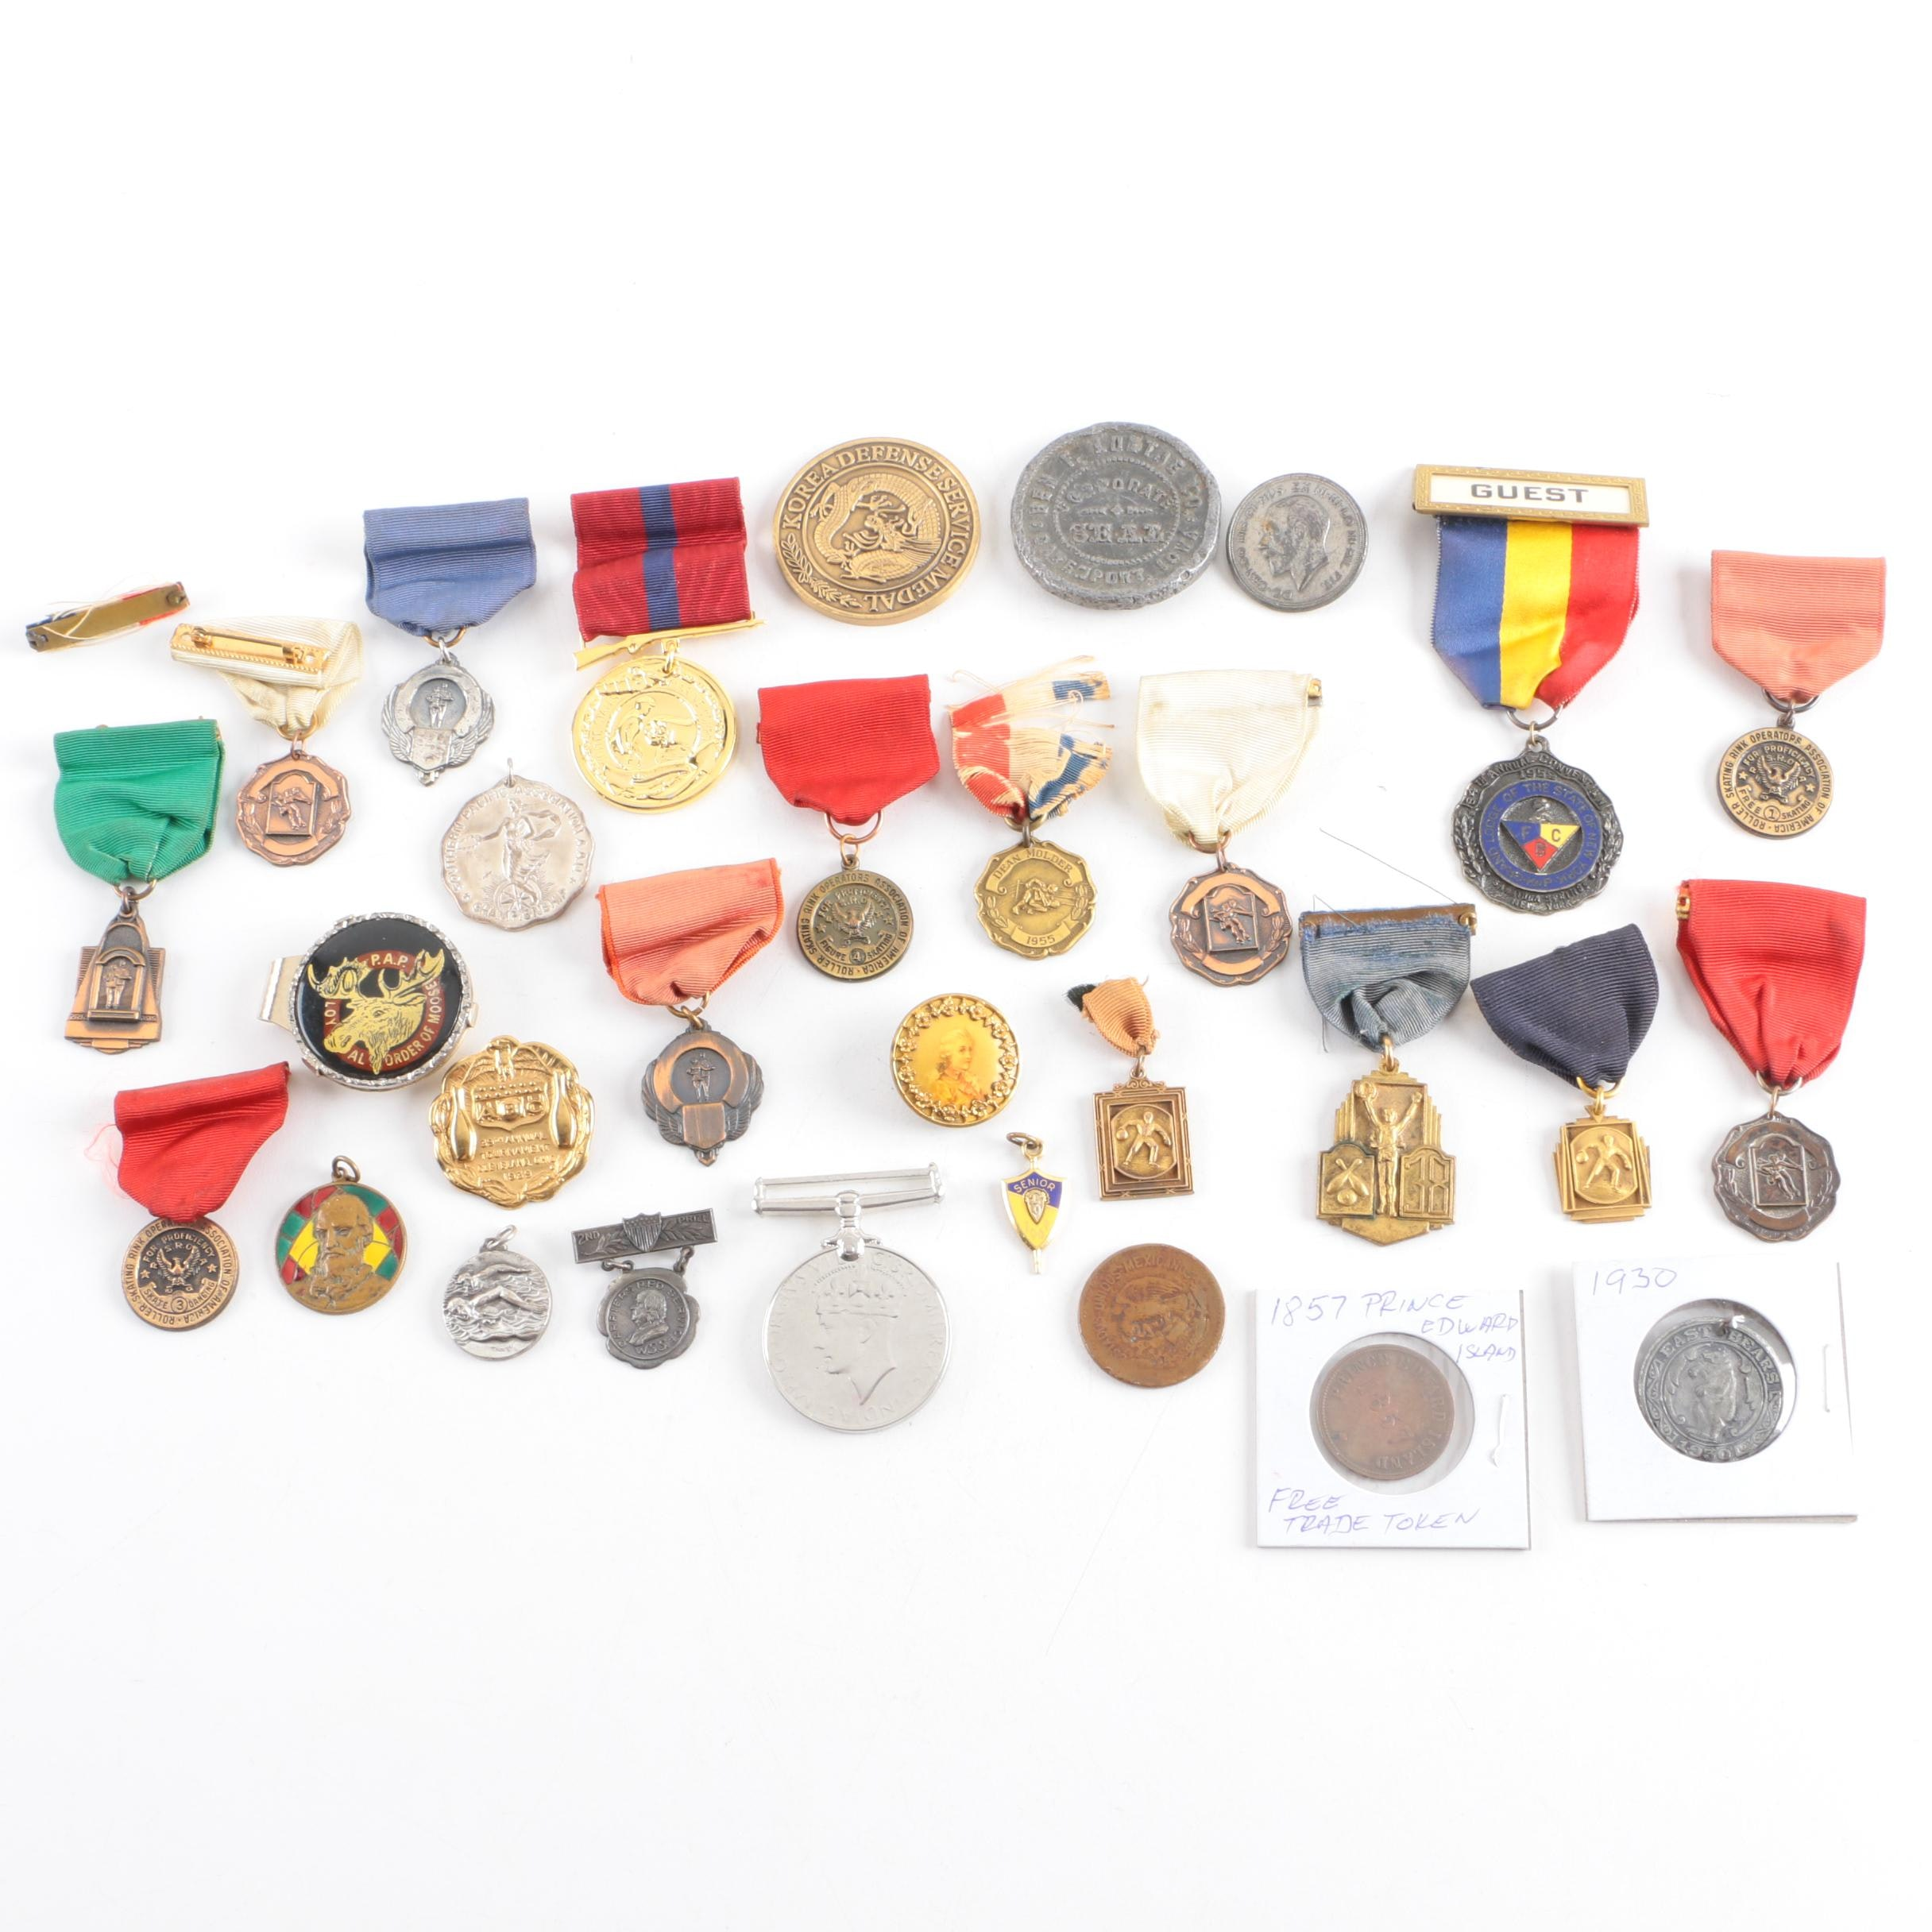 Vintage Medals, Coins, and Pins